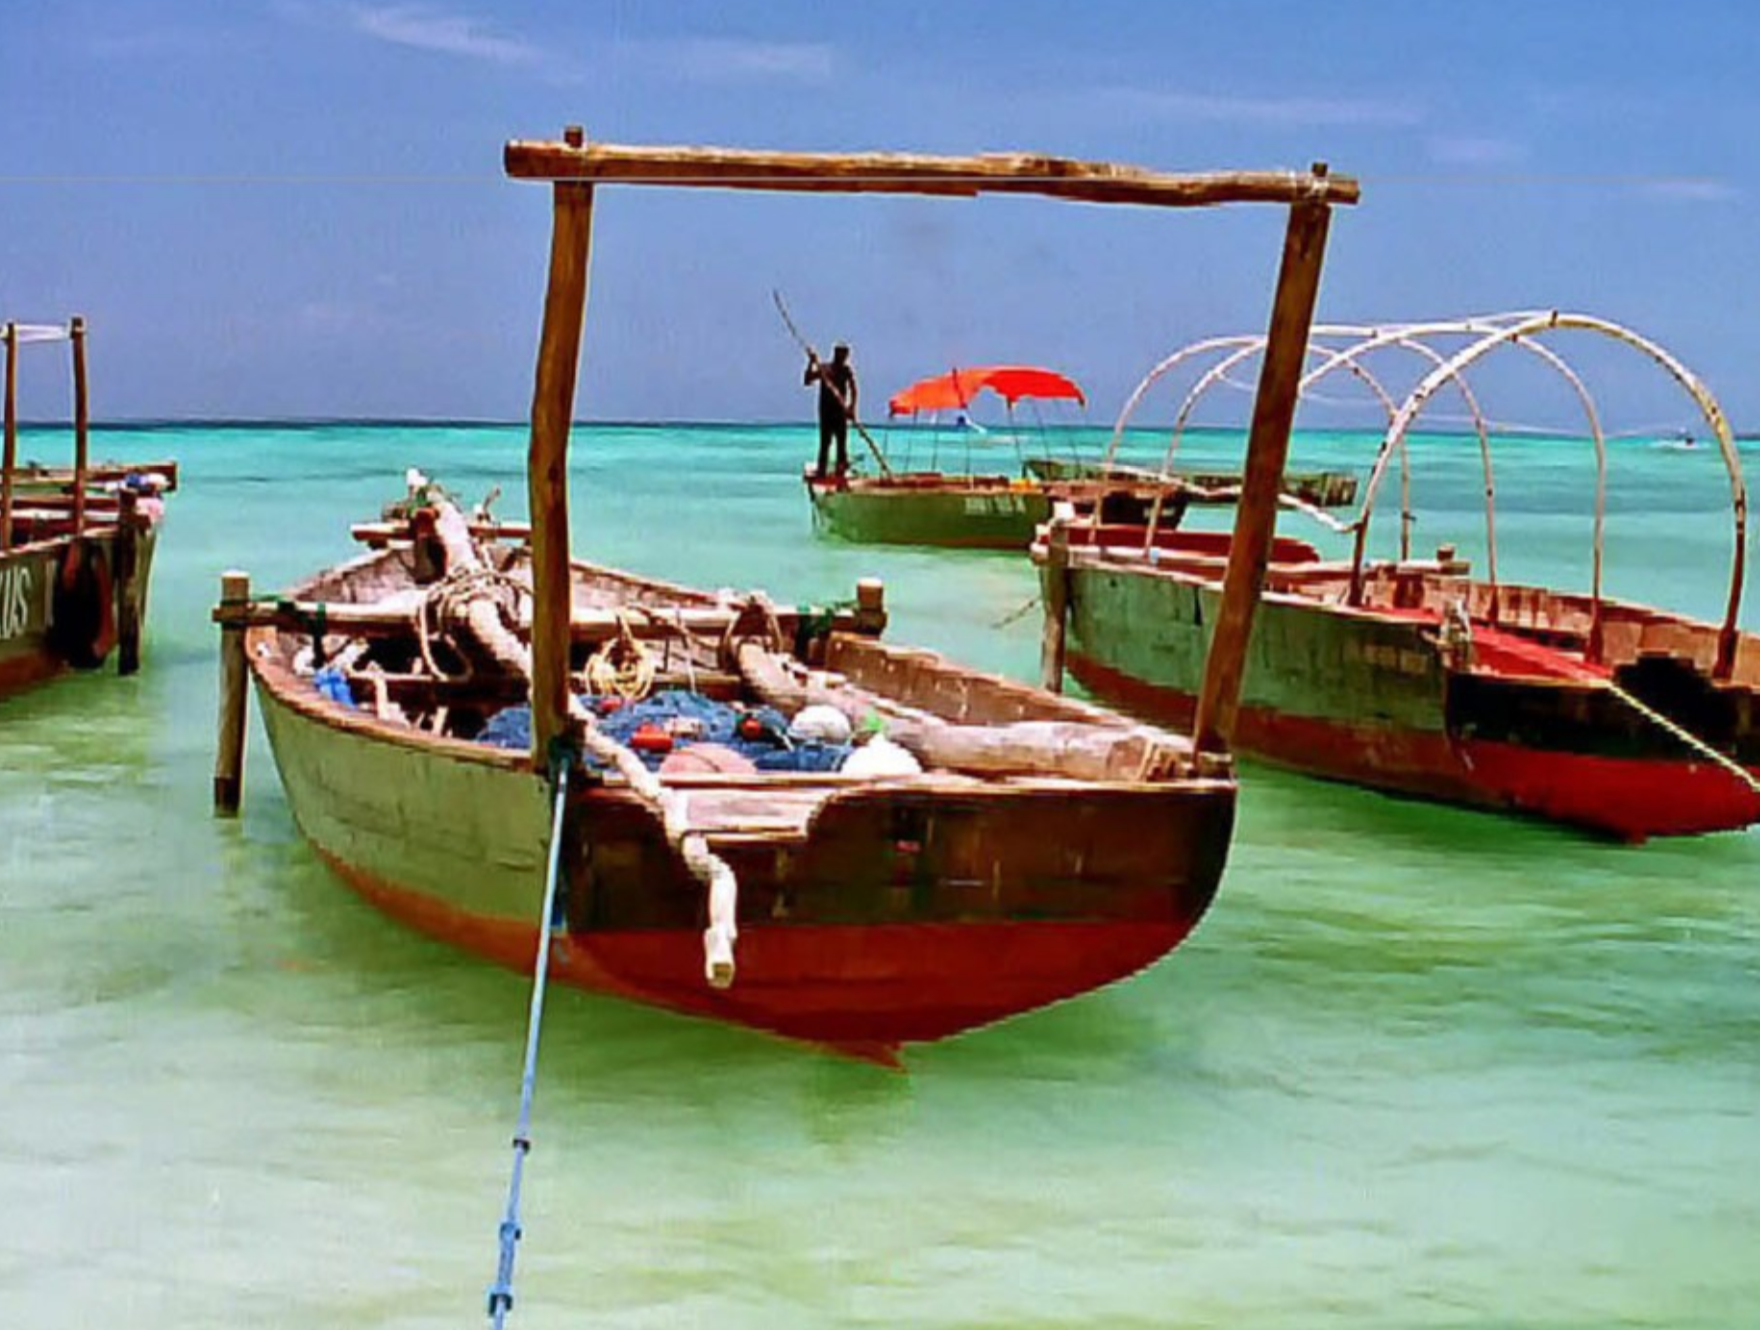 Wooden boats docked in the foreground with one being propelled by a pole in the background.